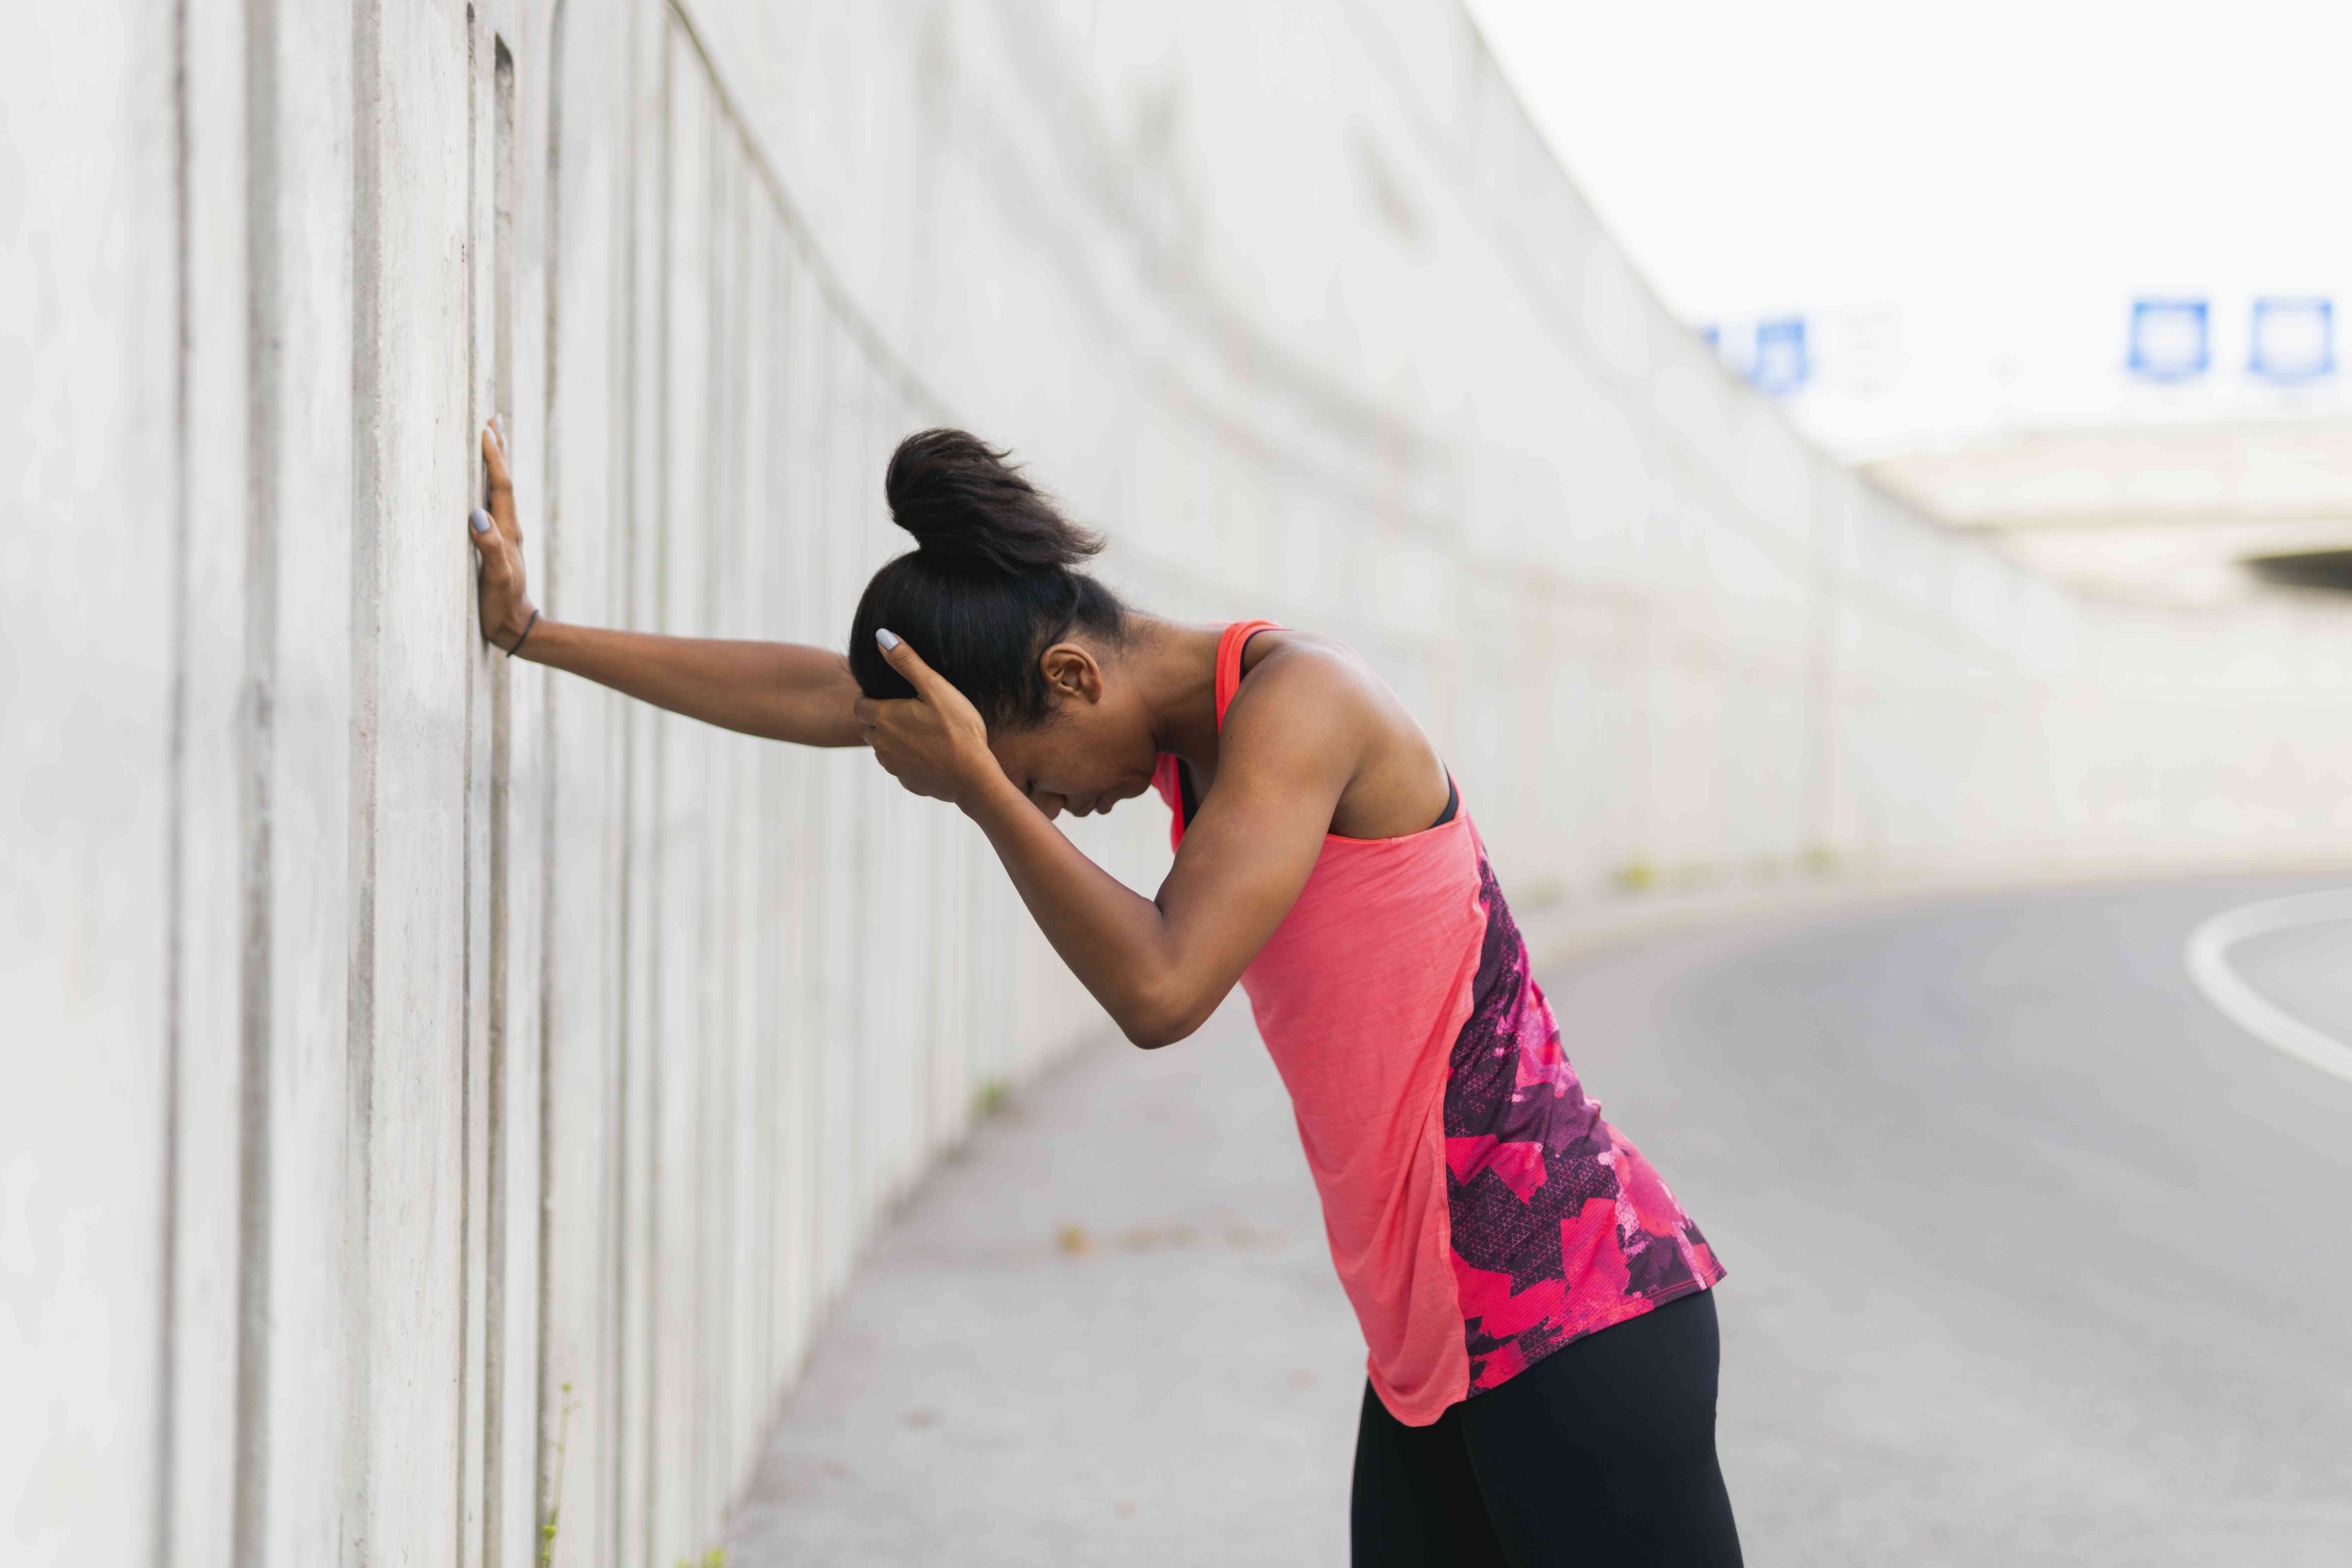 A tired jogger leaning against a wall